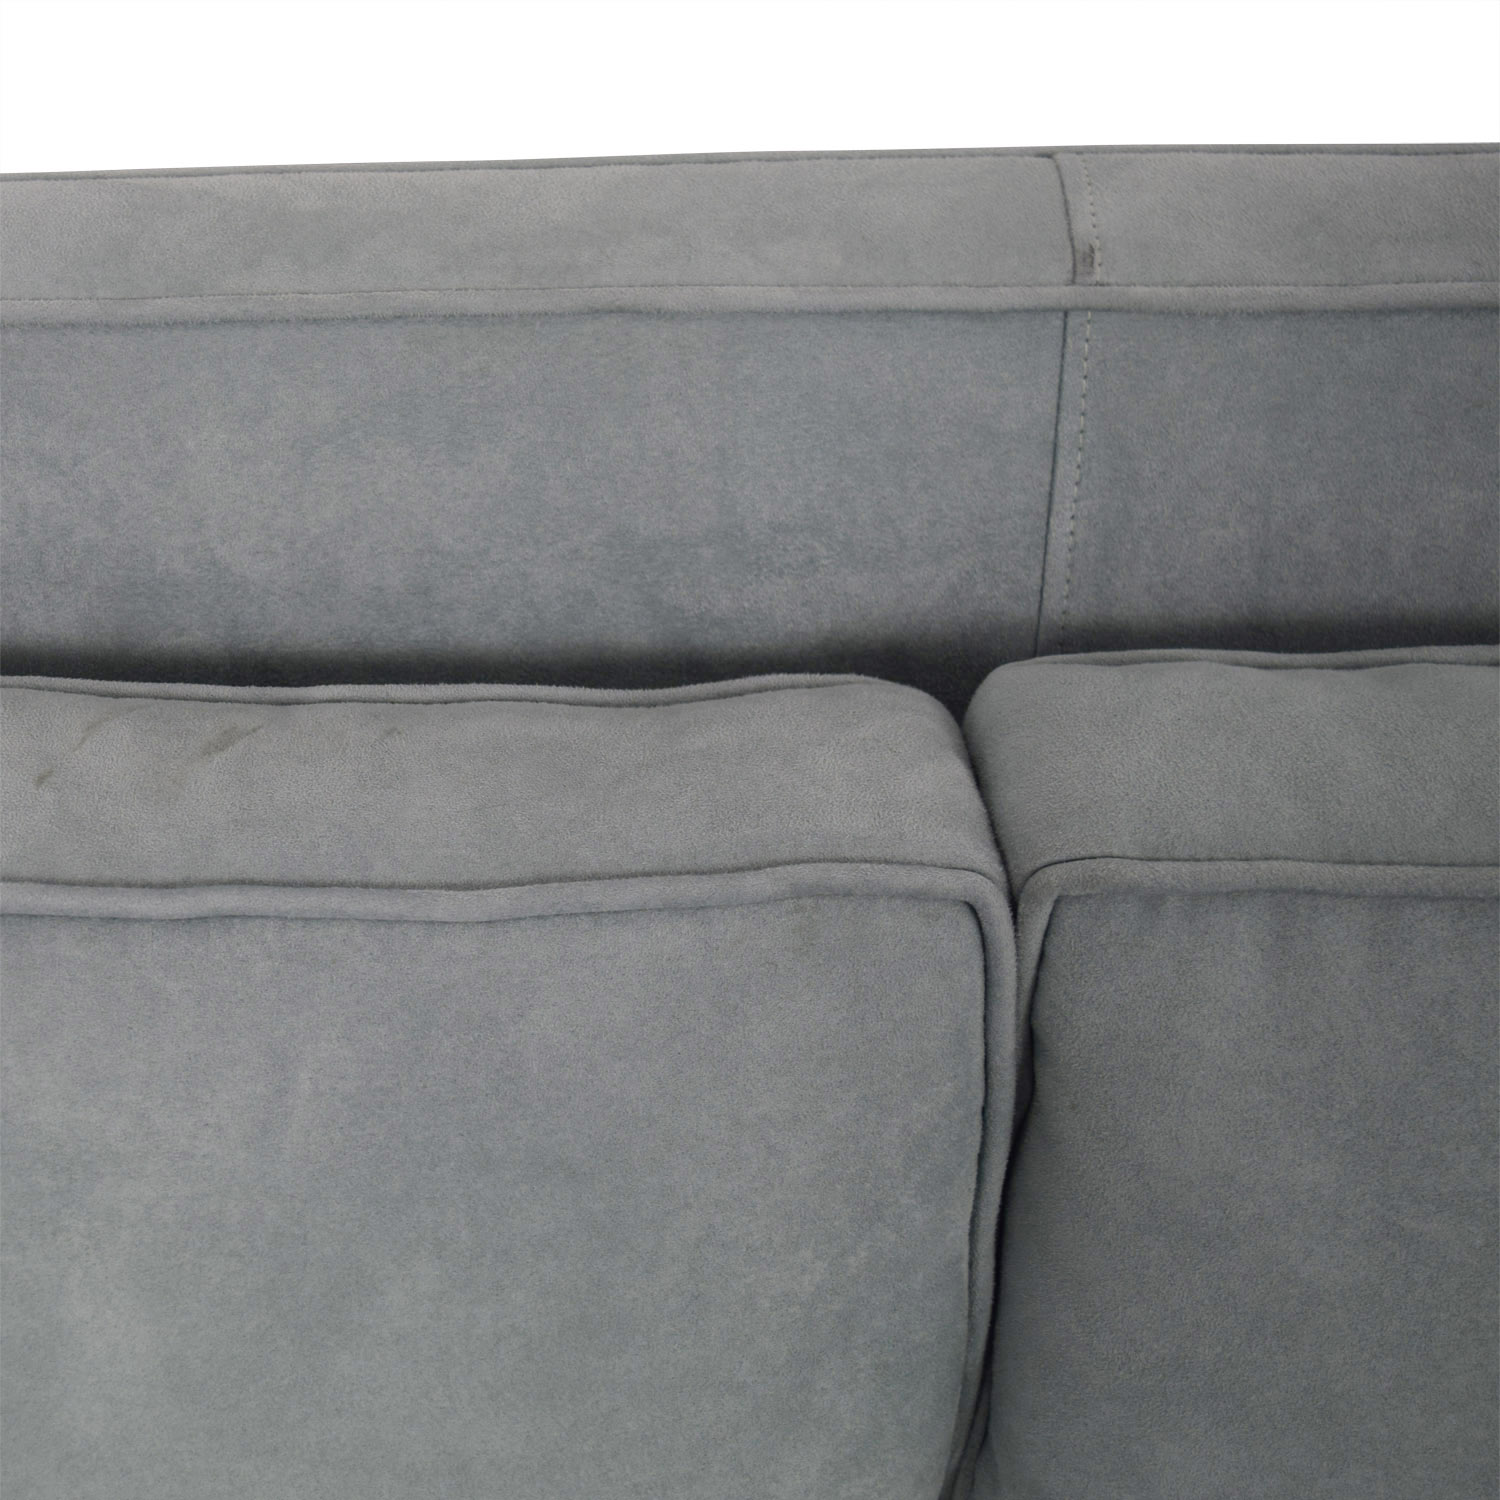 Crate & Barrel Crate & Barrel Rochelle Teal Sectional coupon